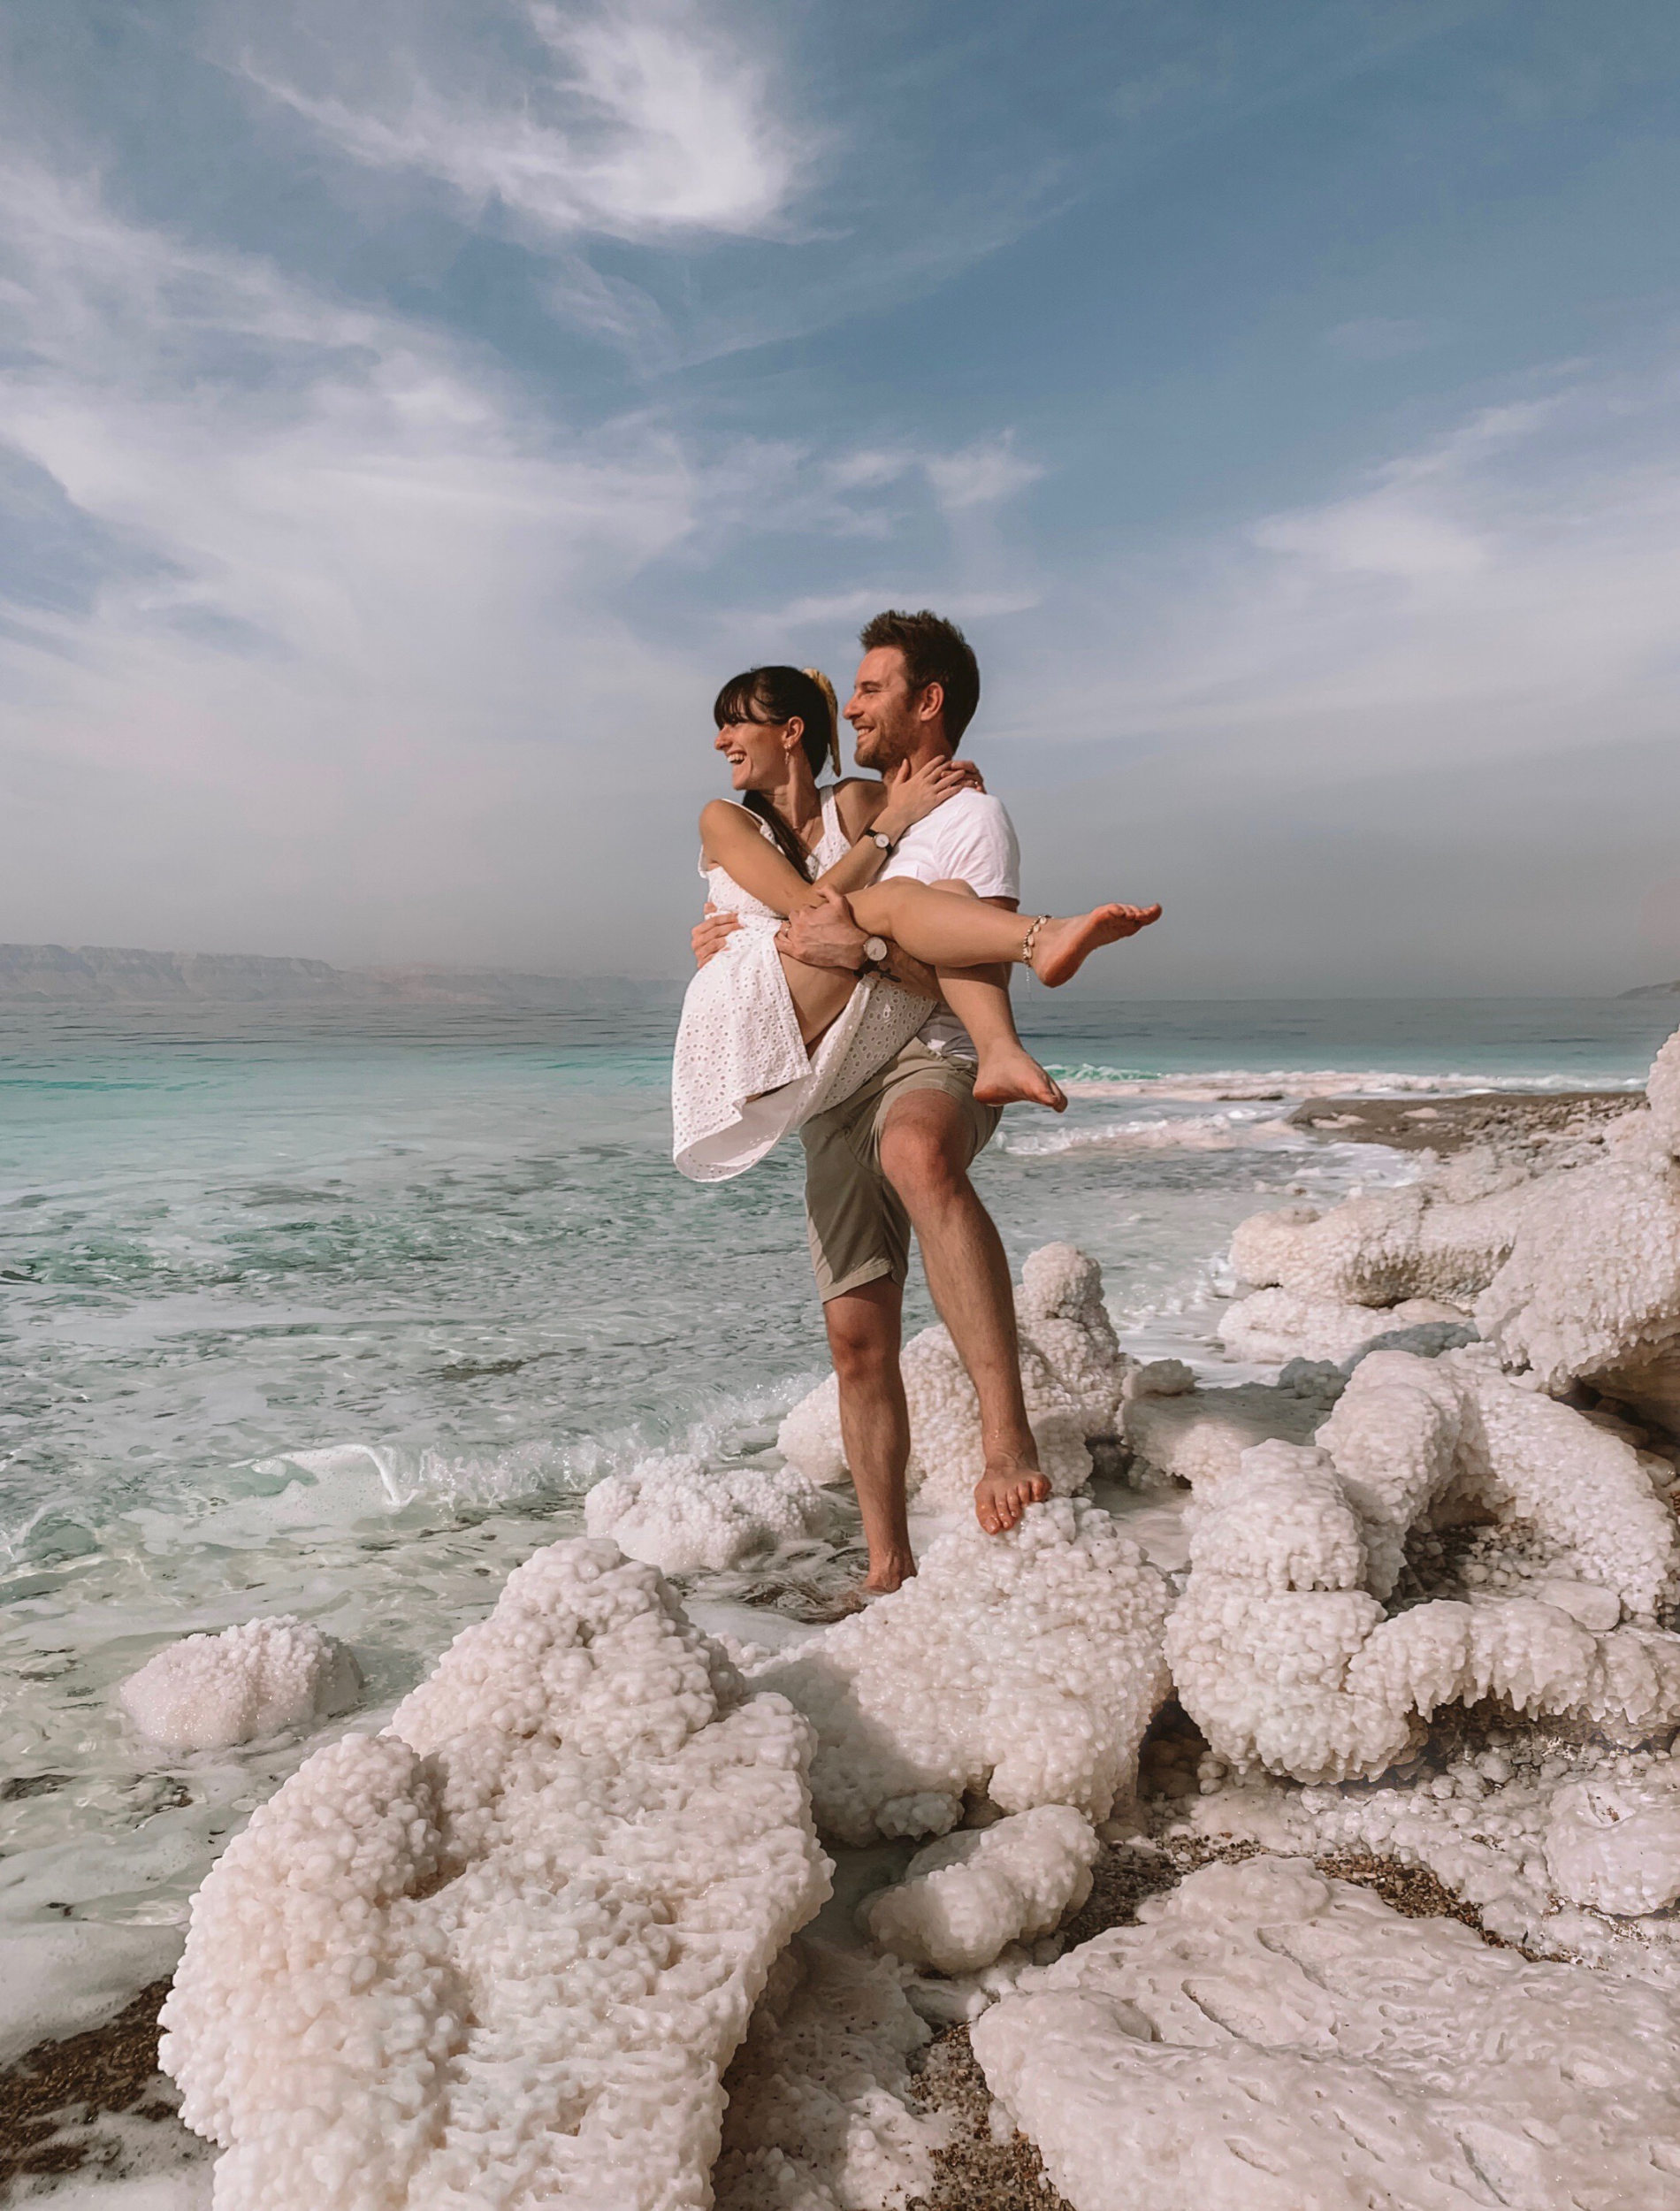 How to find the famous salt formations at the Dead Sea, Jordan part